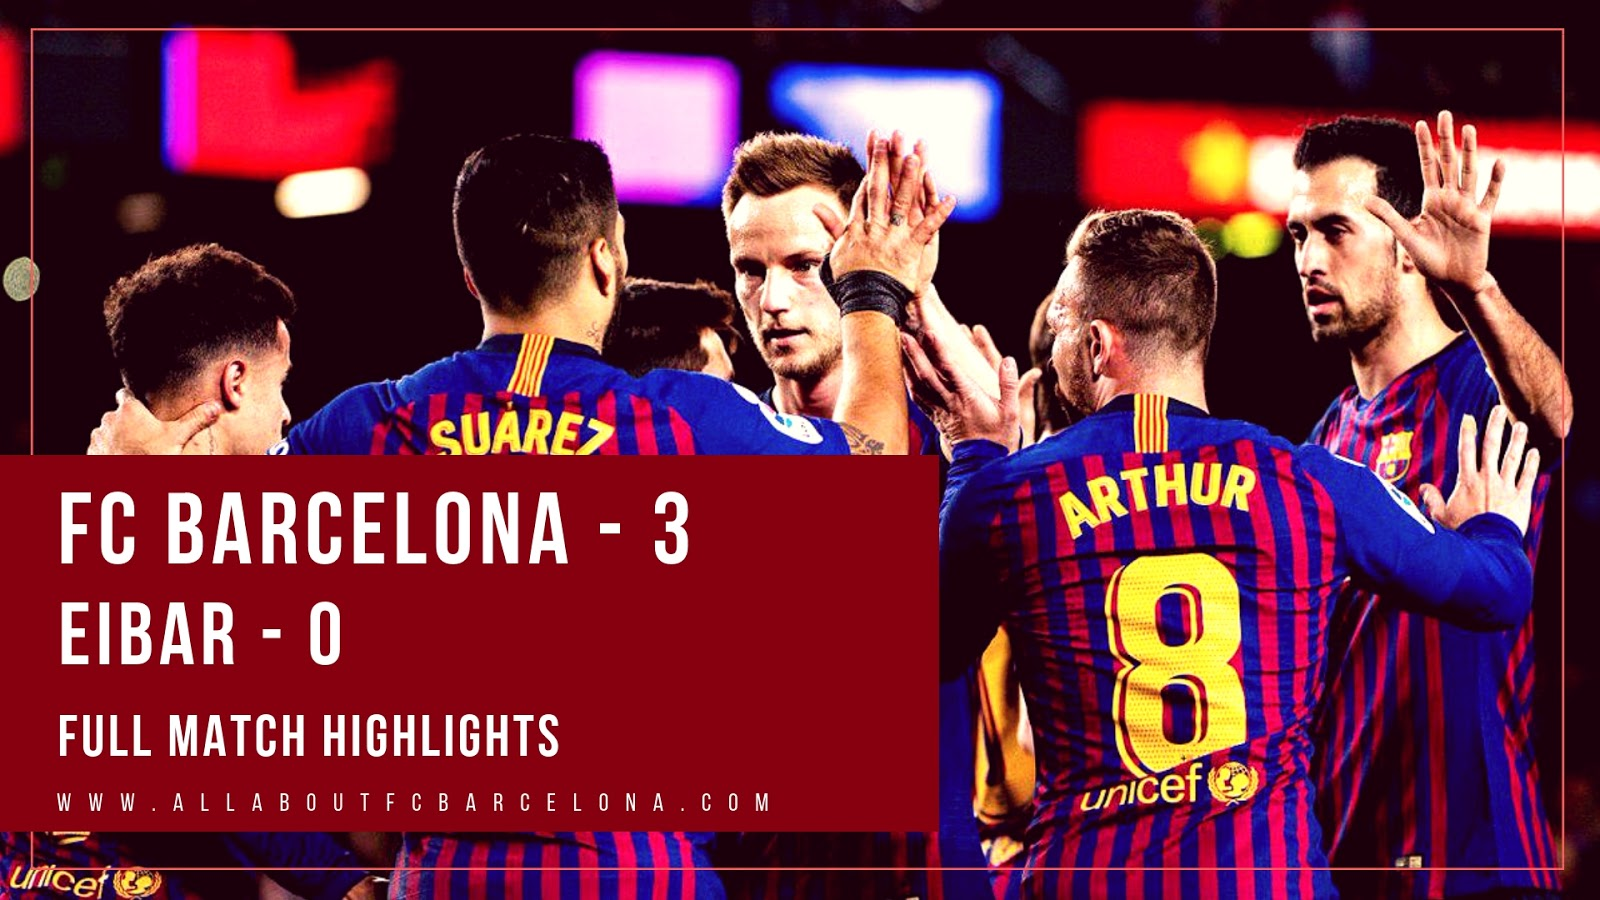 Full Match Highlights of FC Barcelona's 3-0 victory over Eibar at Camp Nou #FCBarcelona #Barca